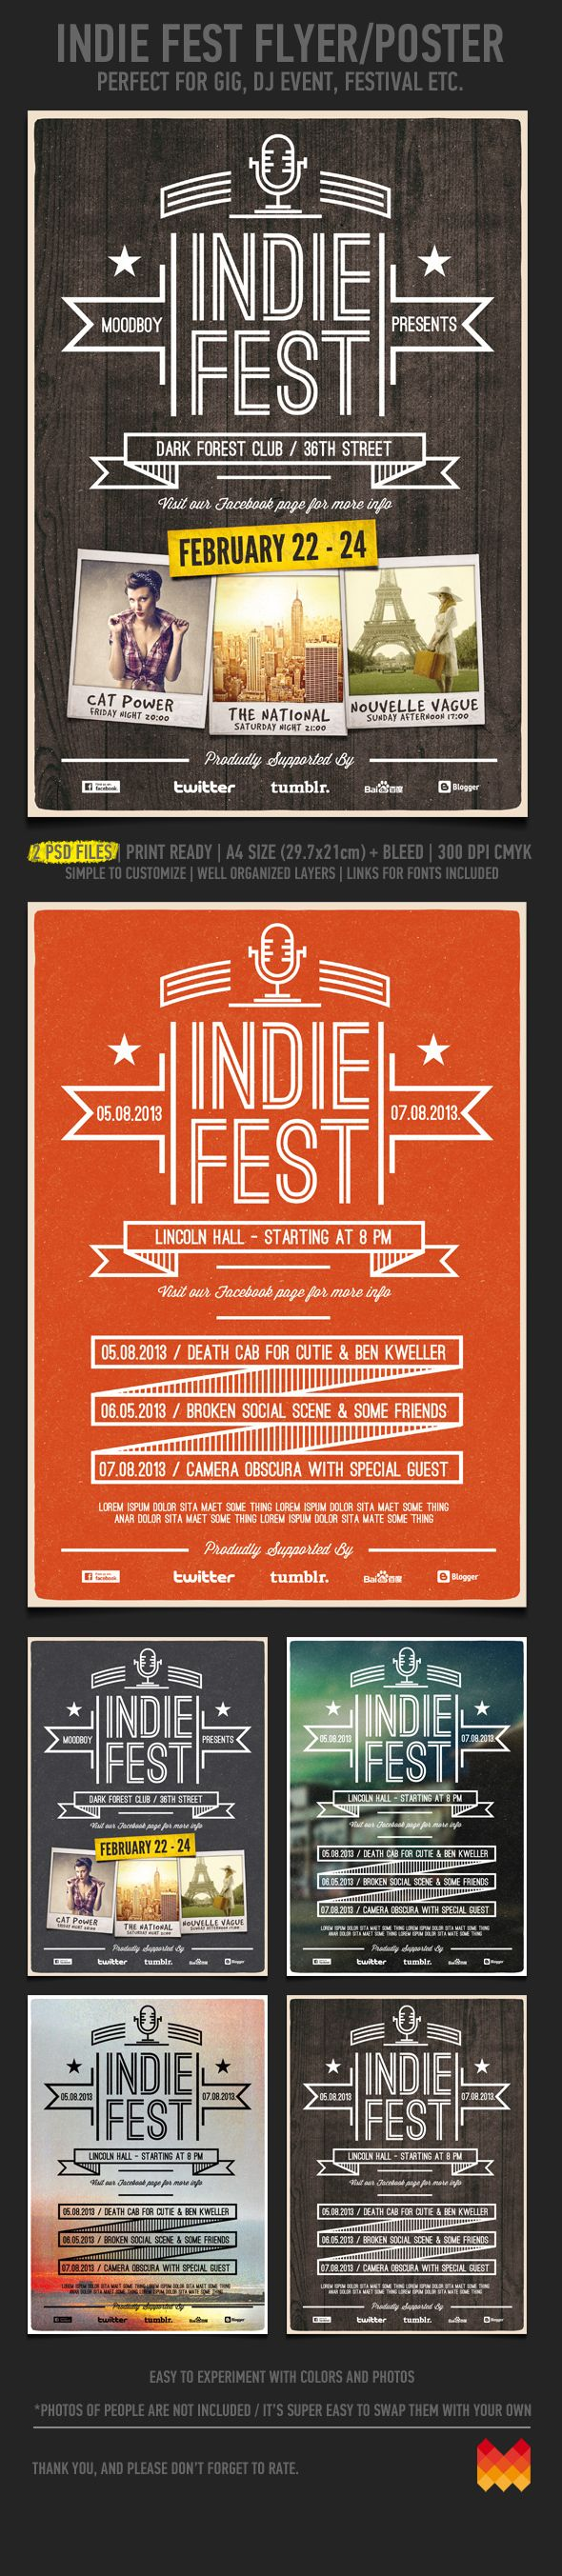 Indie Fest Flyer/Poster Template by moodboy , via Behance